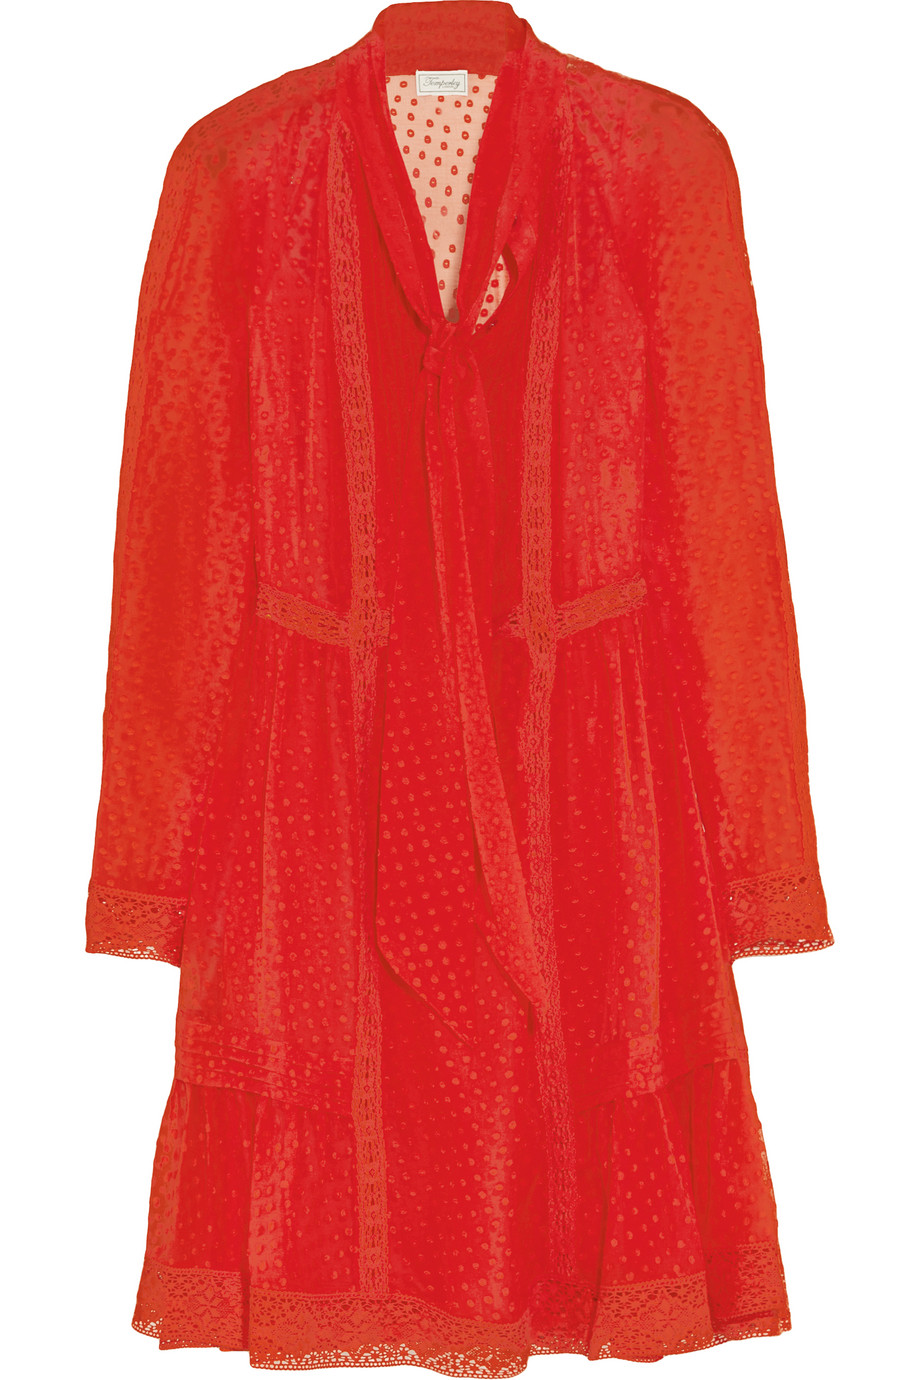 Holzer Lace-Trimmed Fil Coupé Silk-Voile Mini Dress, Temperley London, Red, Women's - Dotted, Size: 6